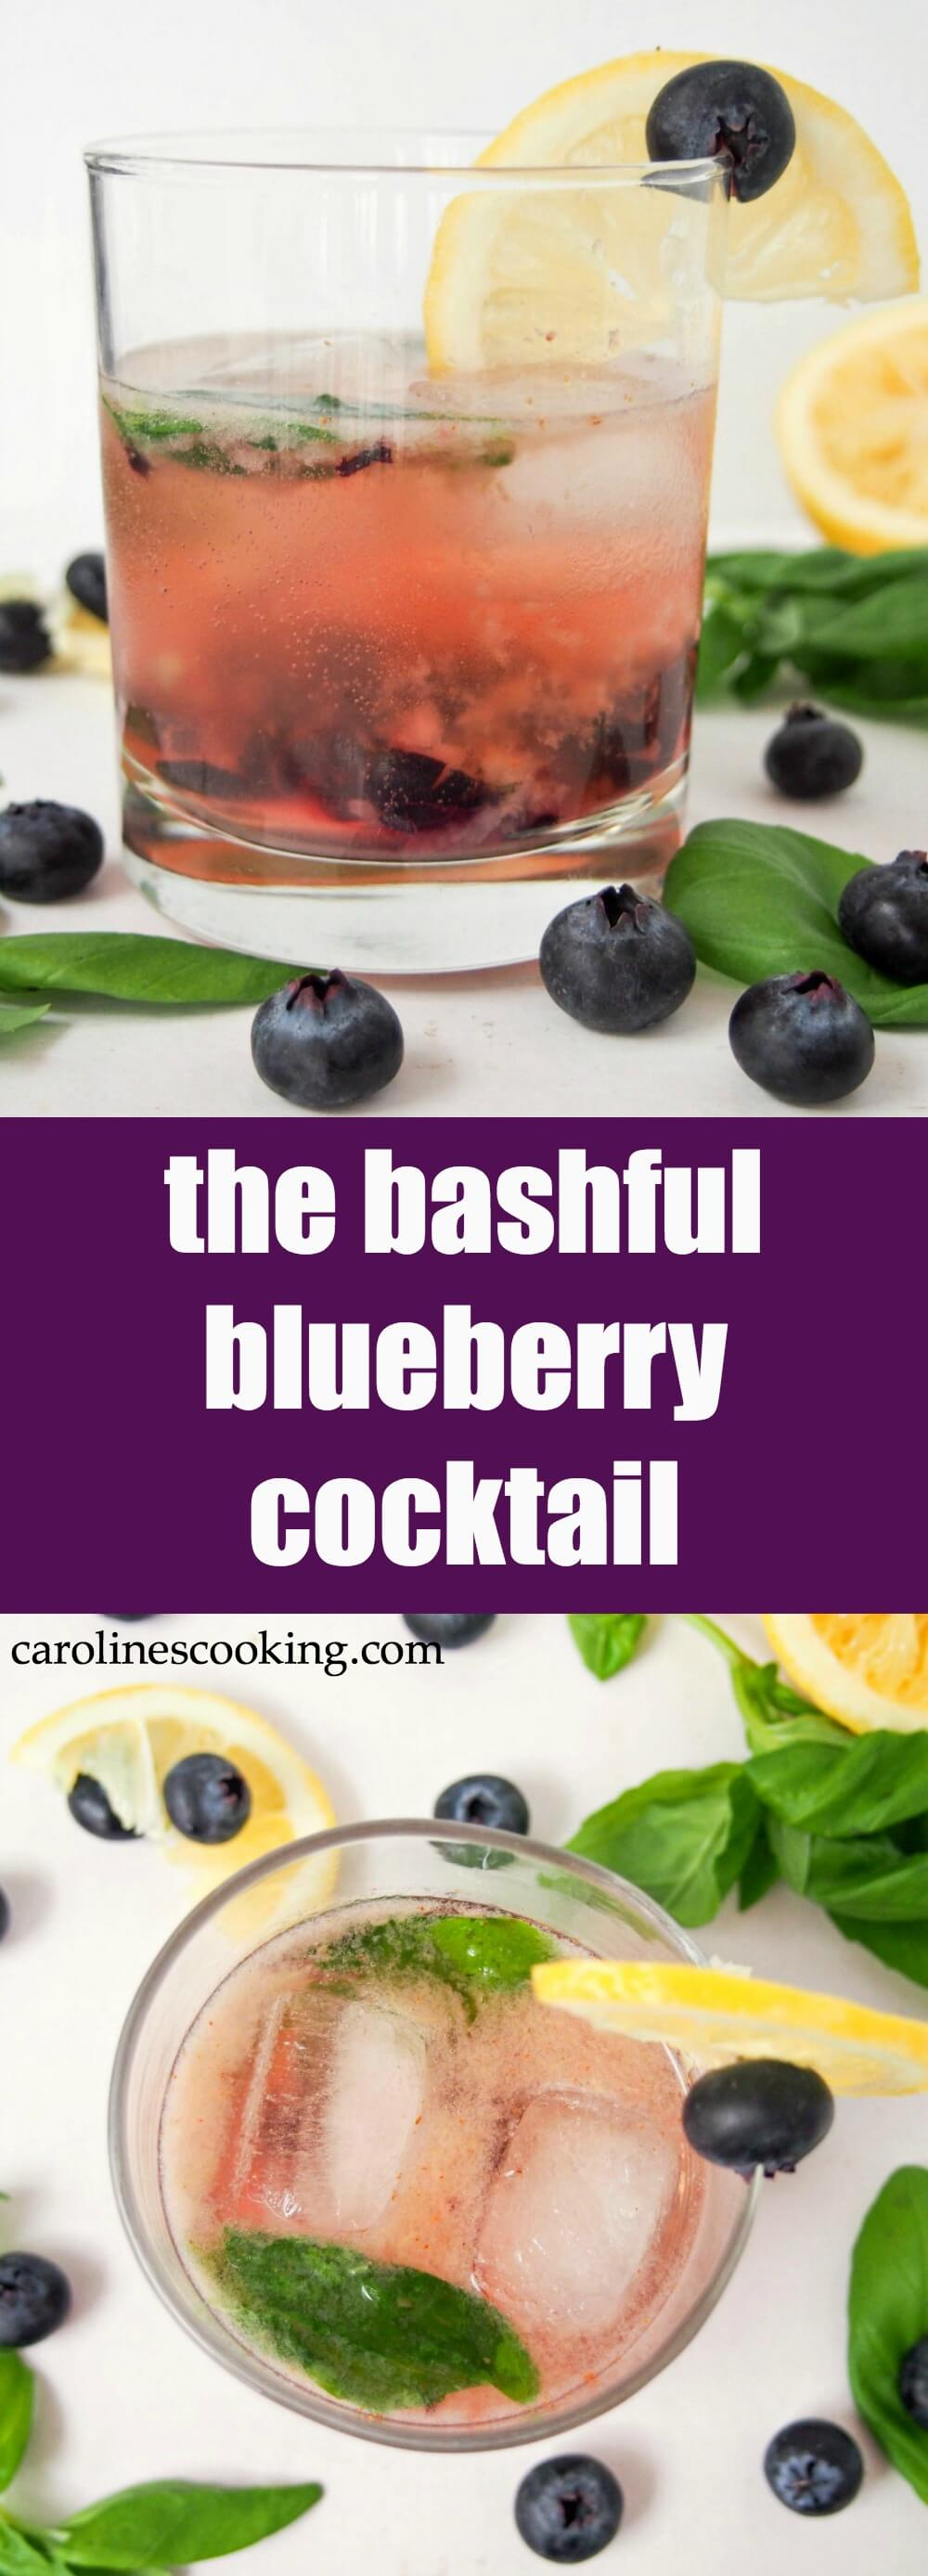 This bashful blueberry cocktail is a delicious mix of blueberries, lemon, vermouth, whiskey and a hint of basil. Topped with soda, it's a refreshing drink perfect for summer sipping. Easy to make & easy to enjoy!